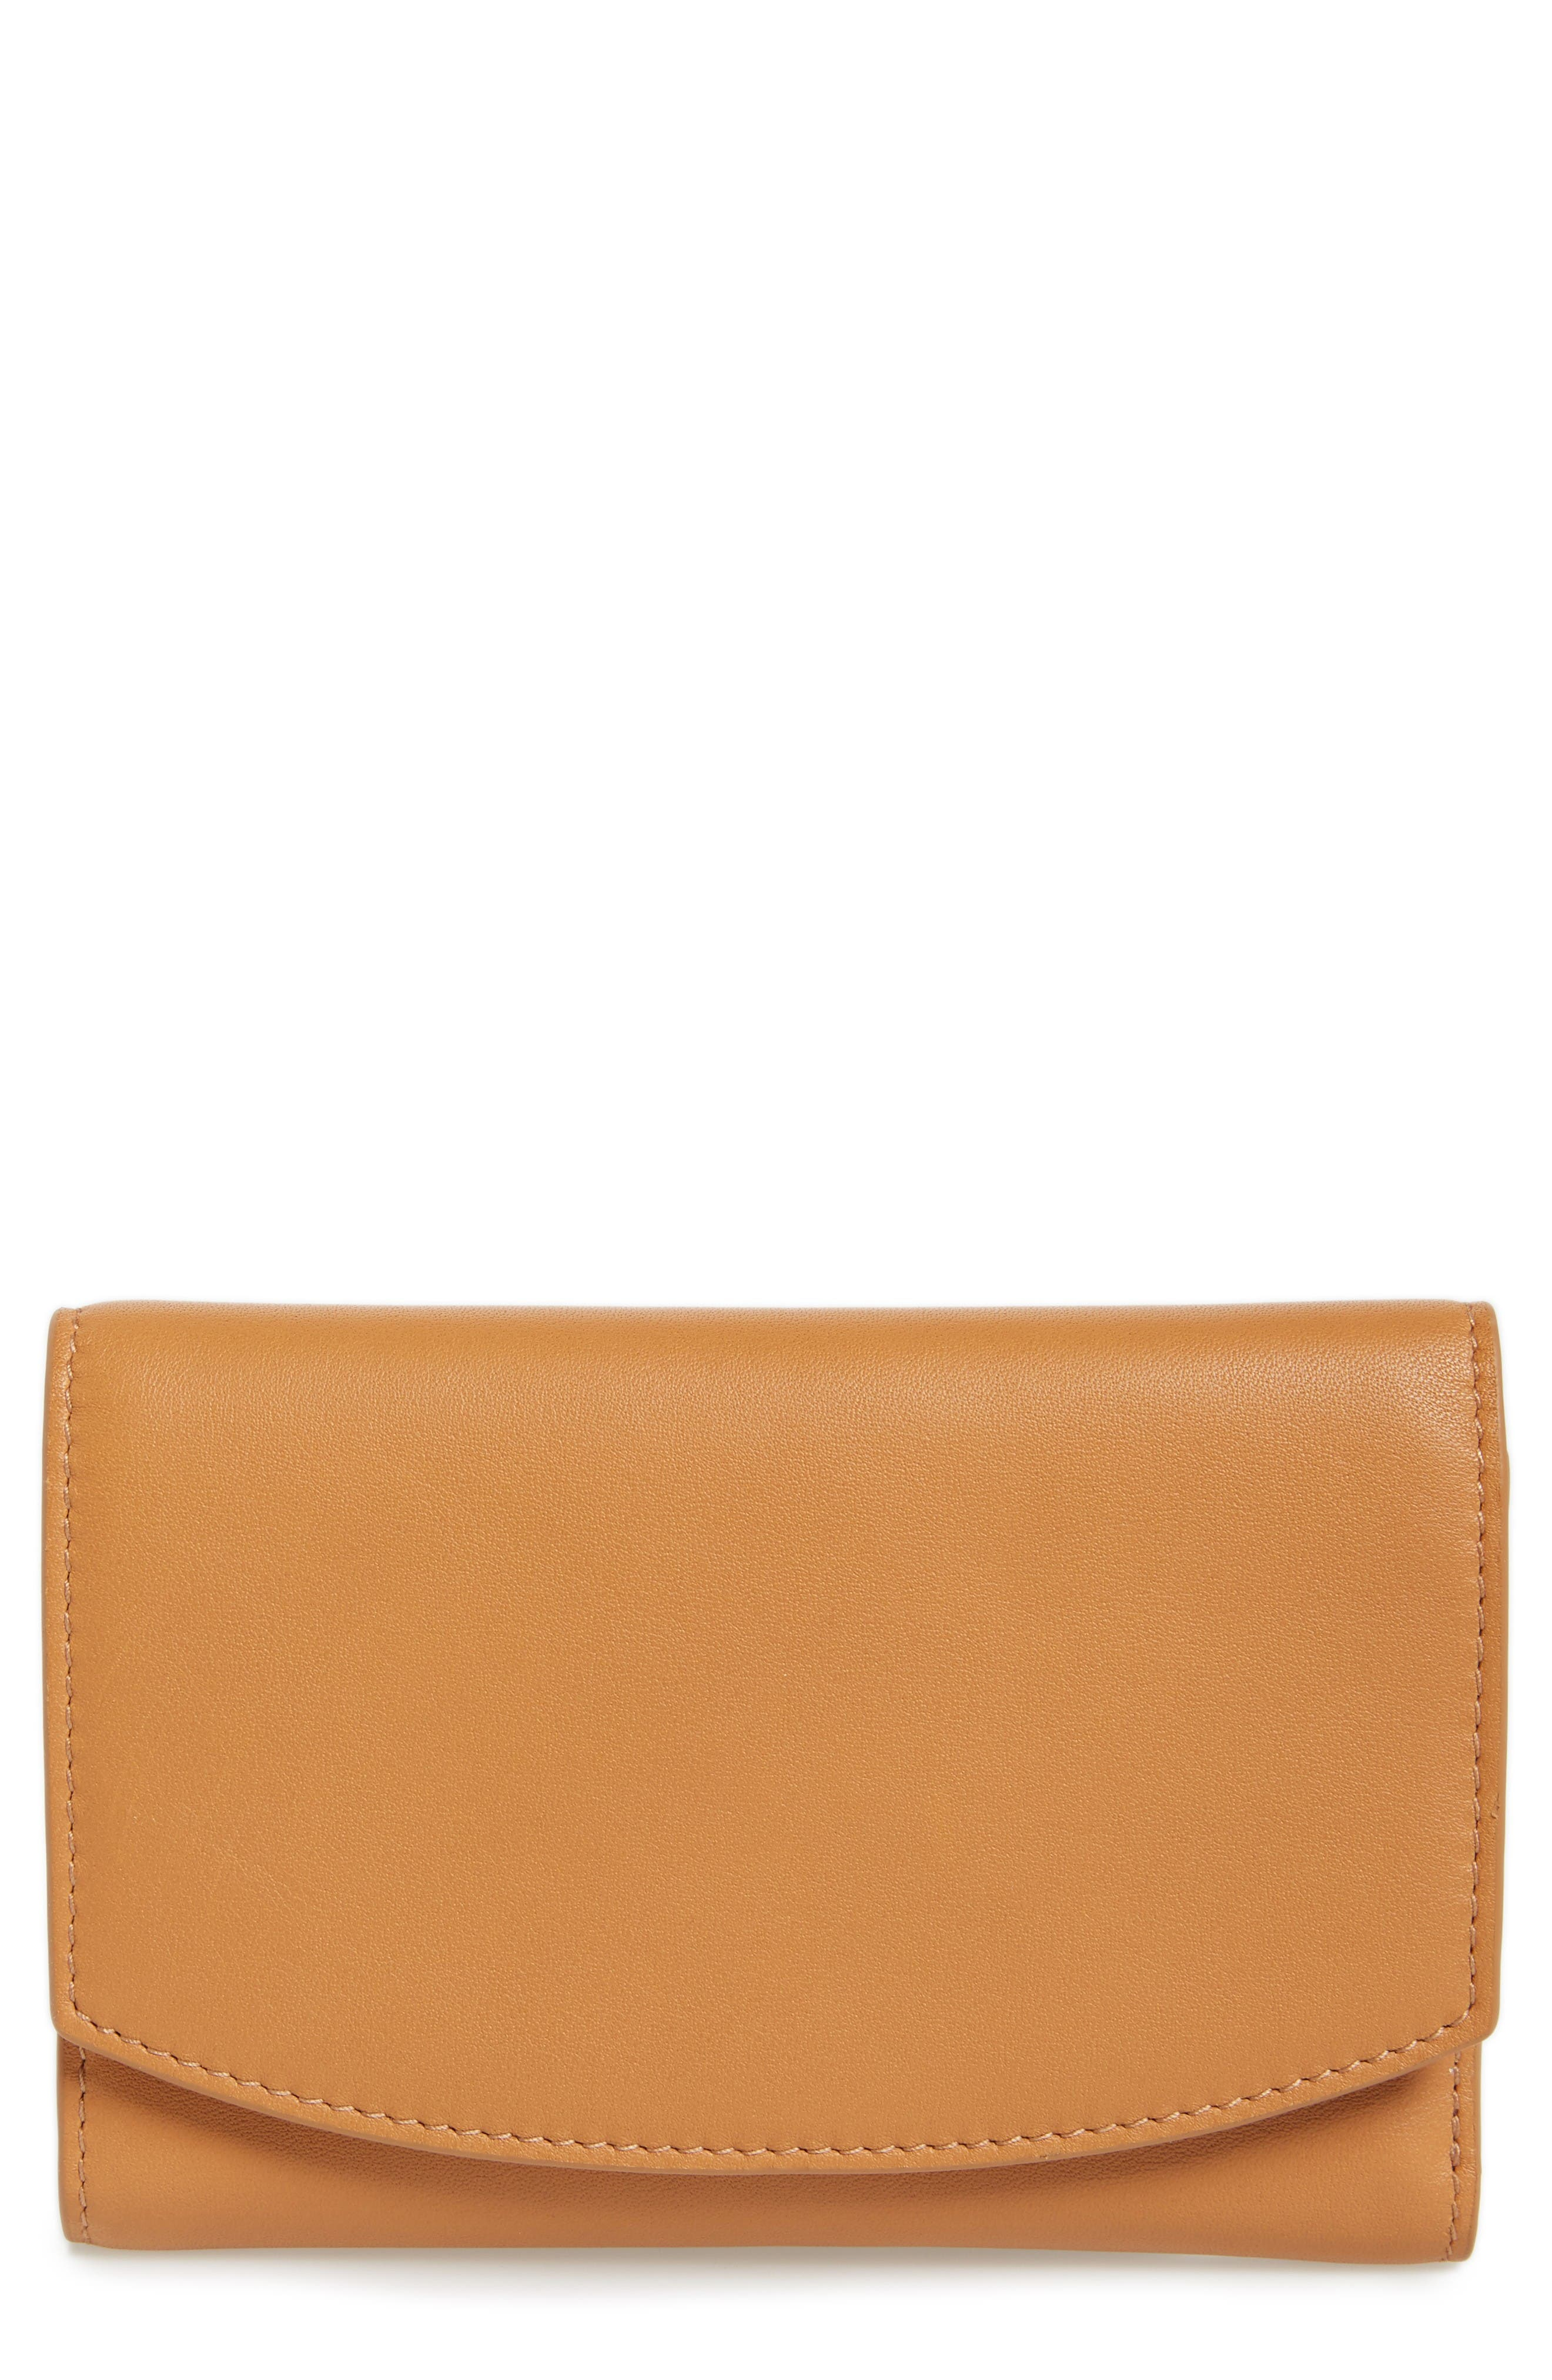 Main Image - Skagen Compact Leather Flap Wallet